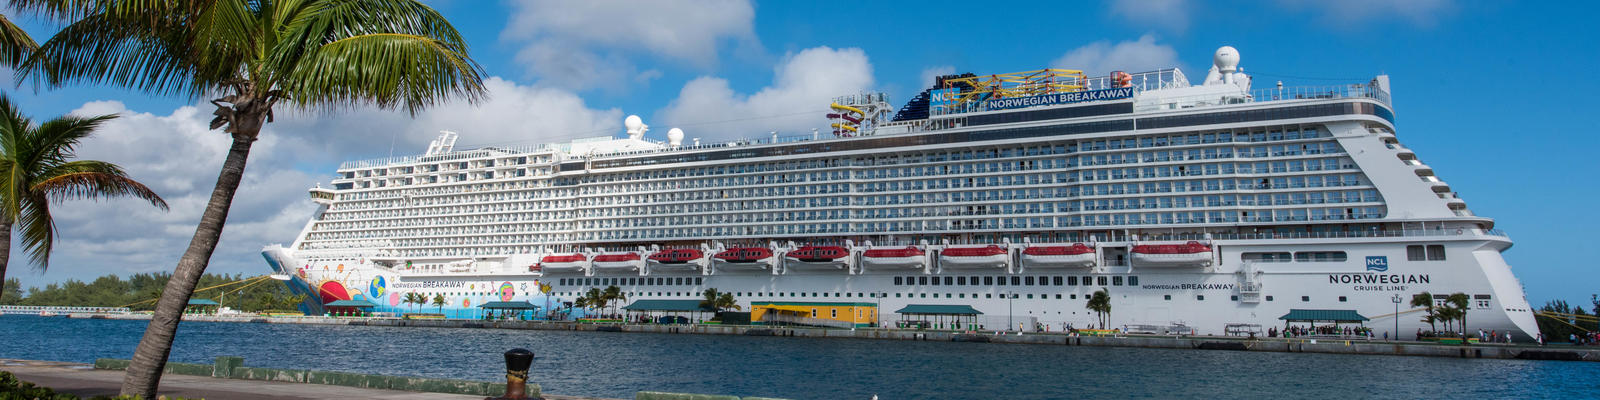 How to Apply for a Cruise Visa (Photo: Cruise Critic)